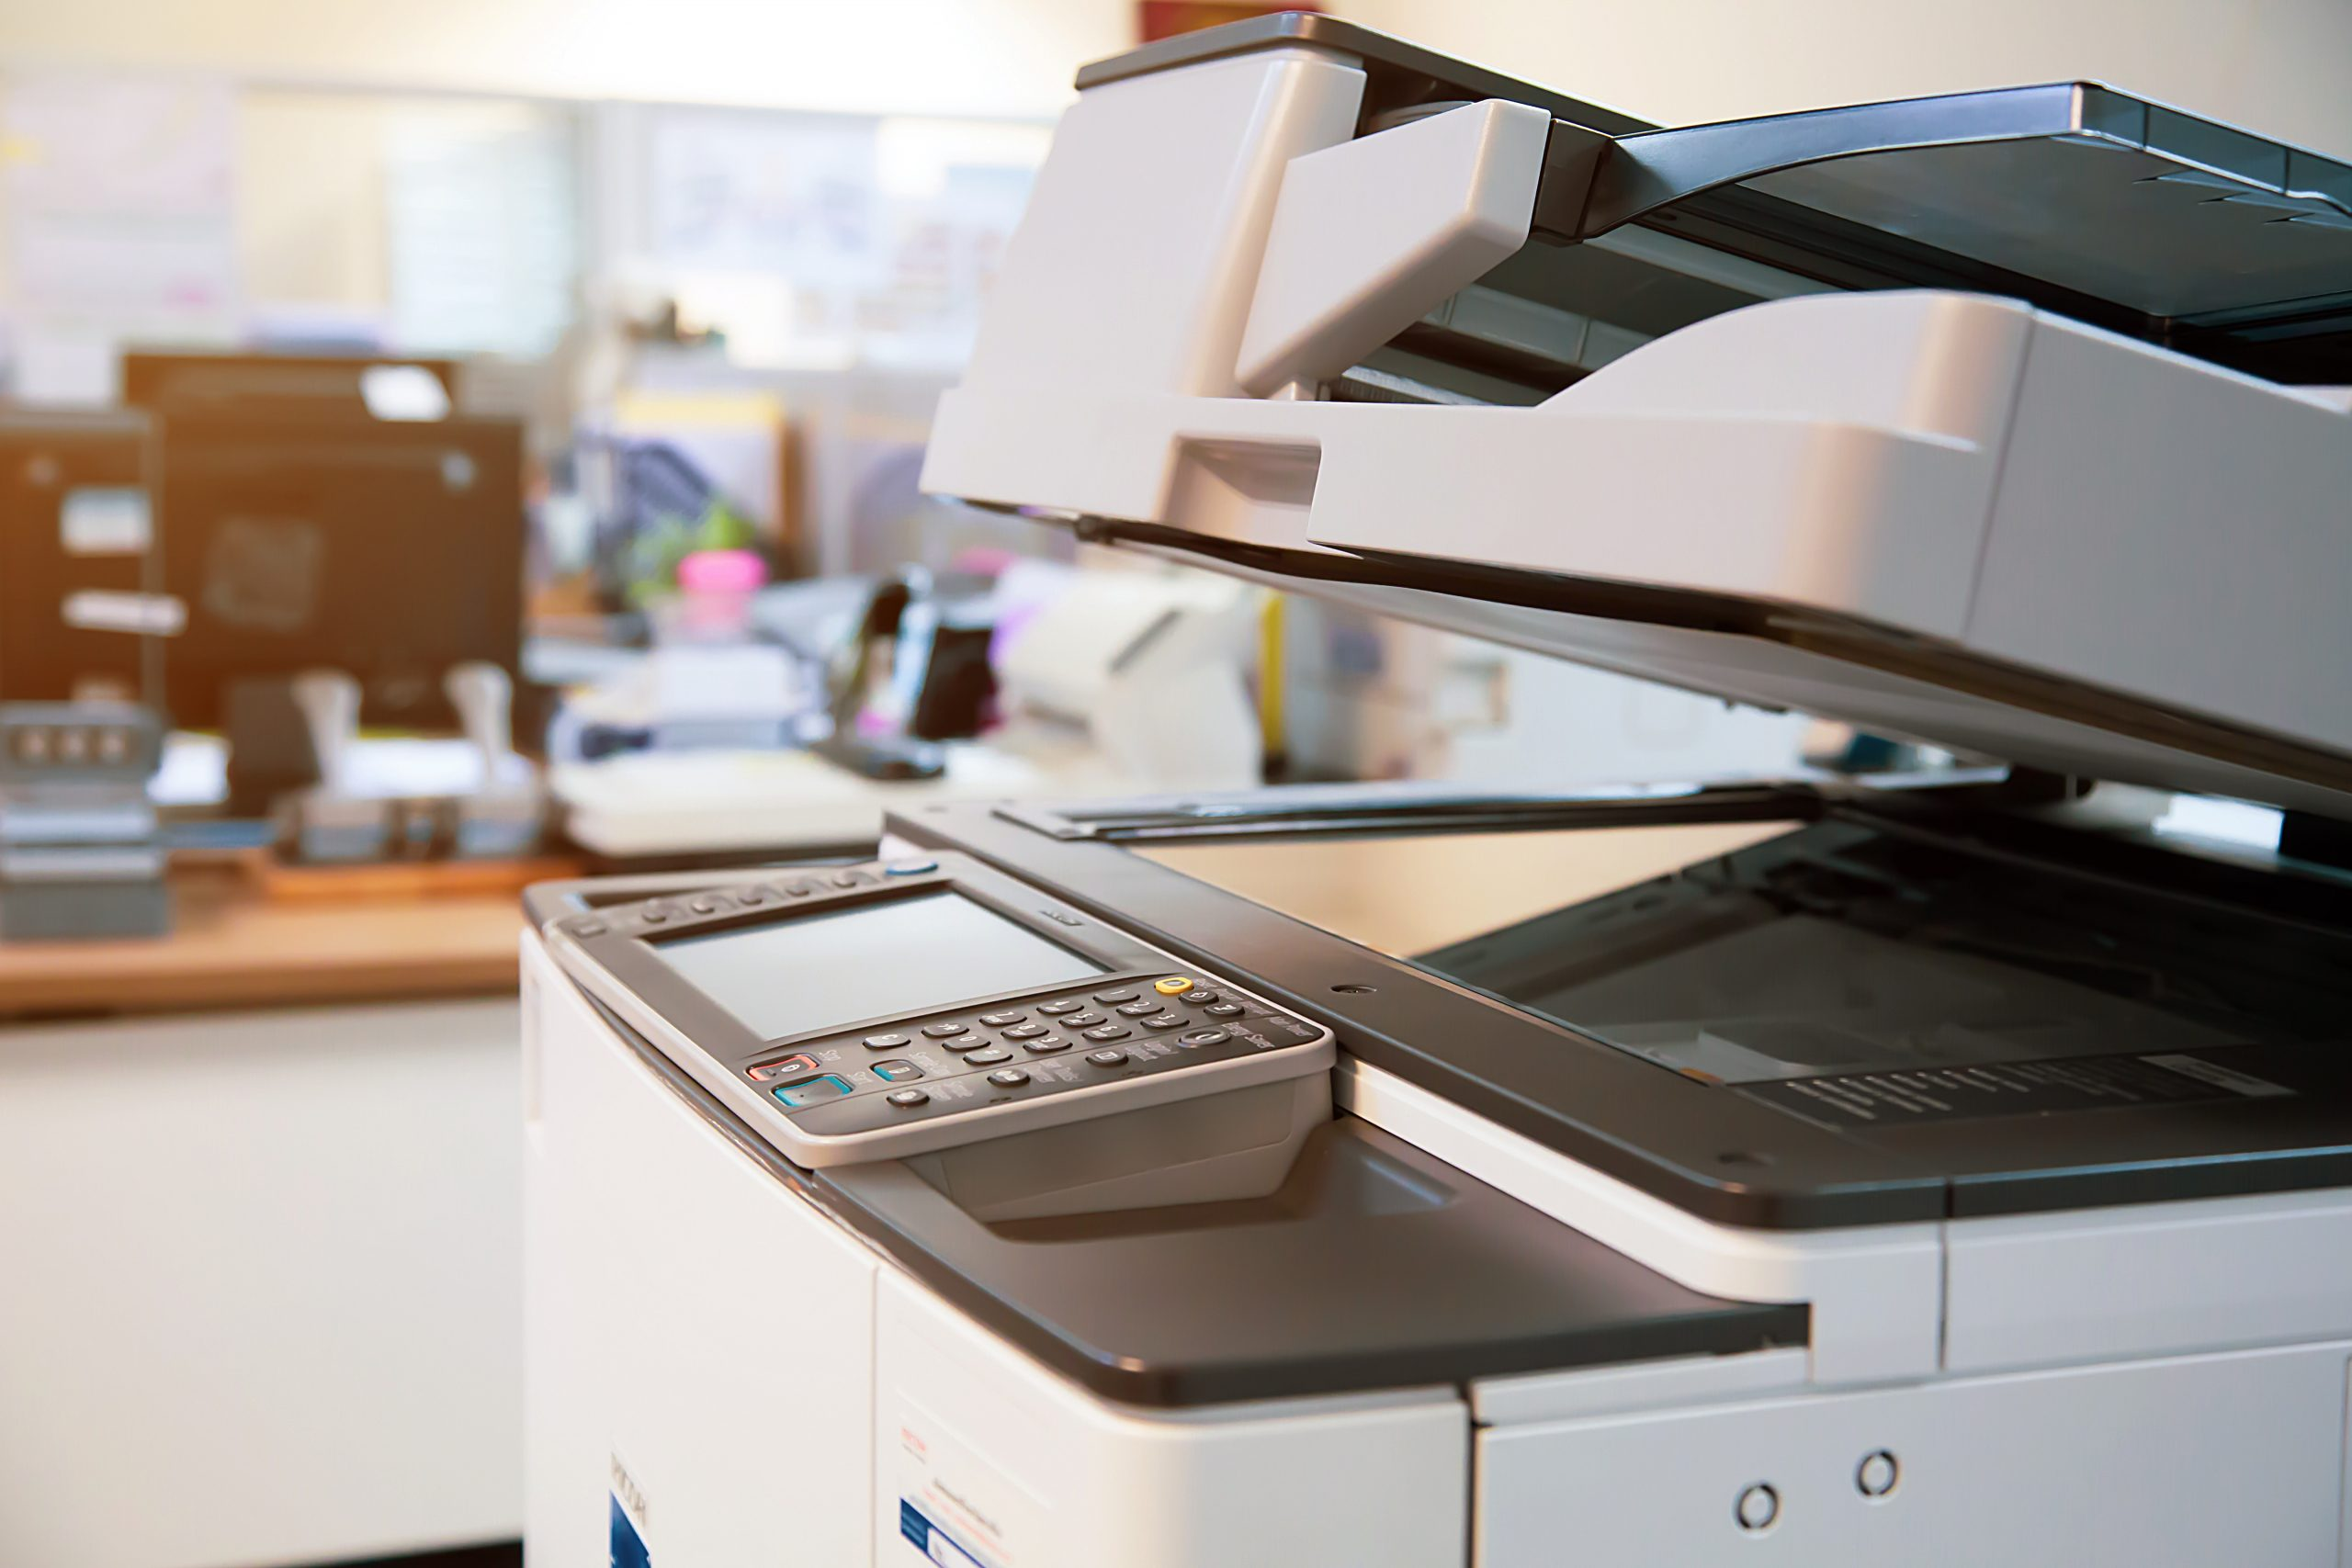 How can managed print services benefit schools?